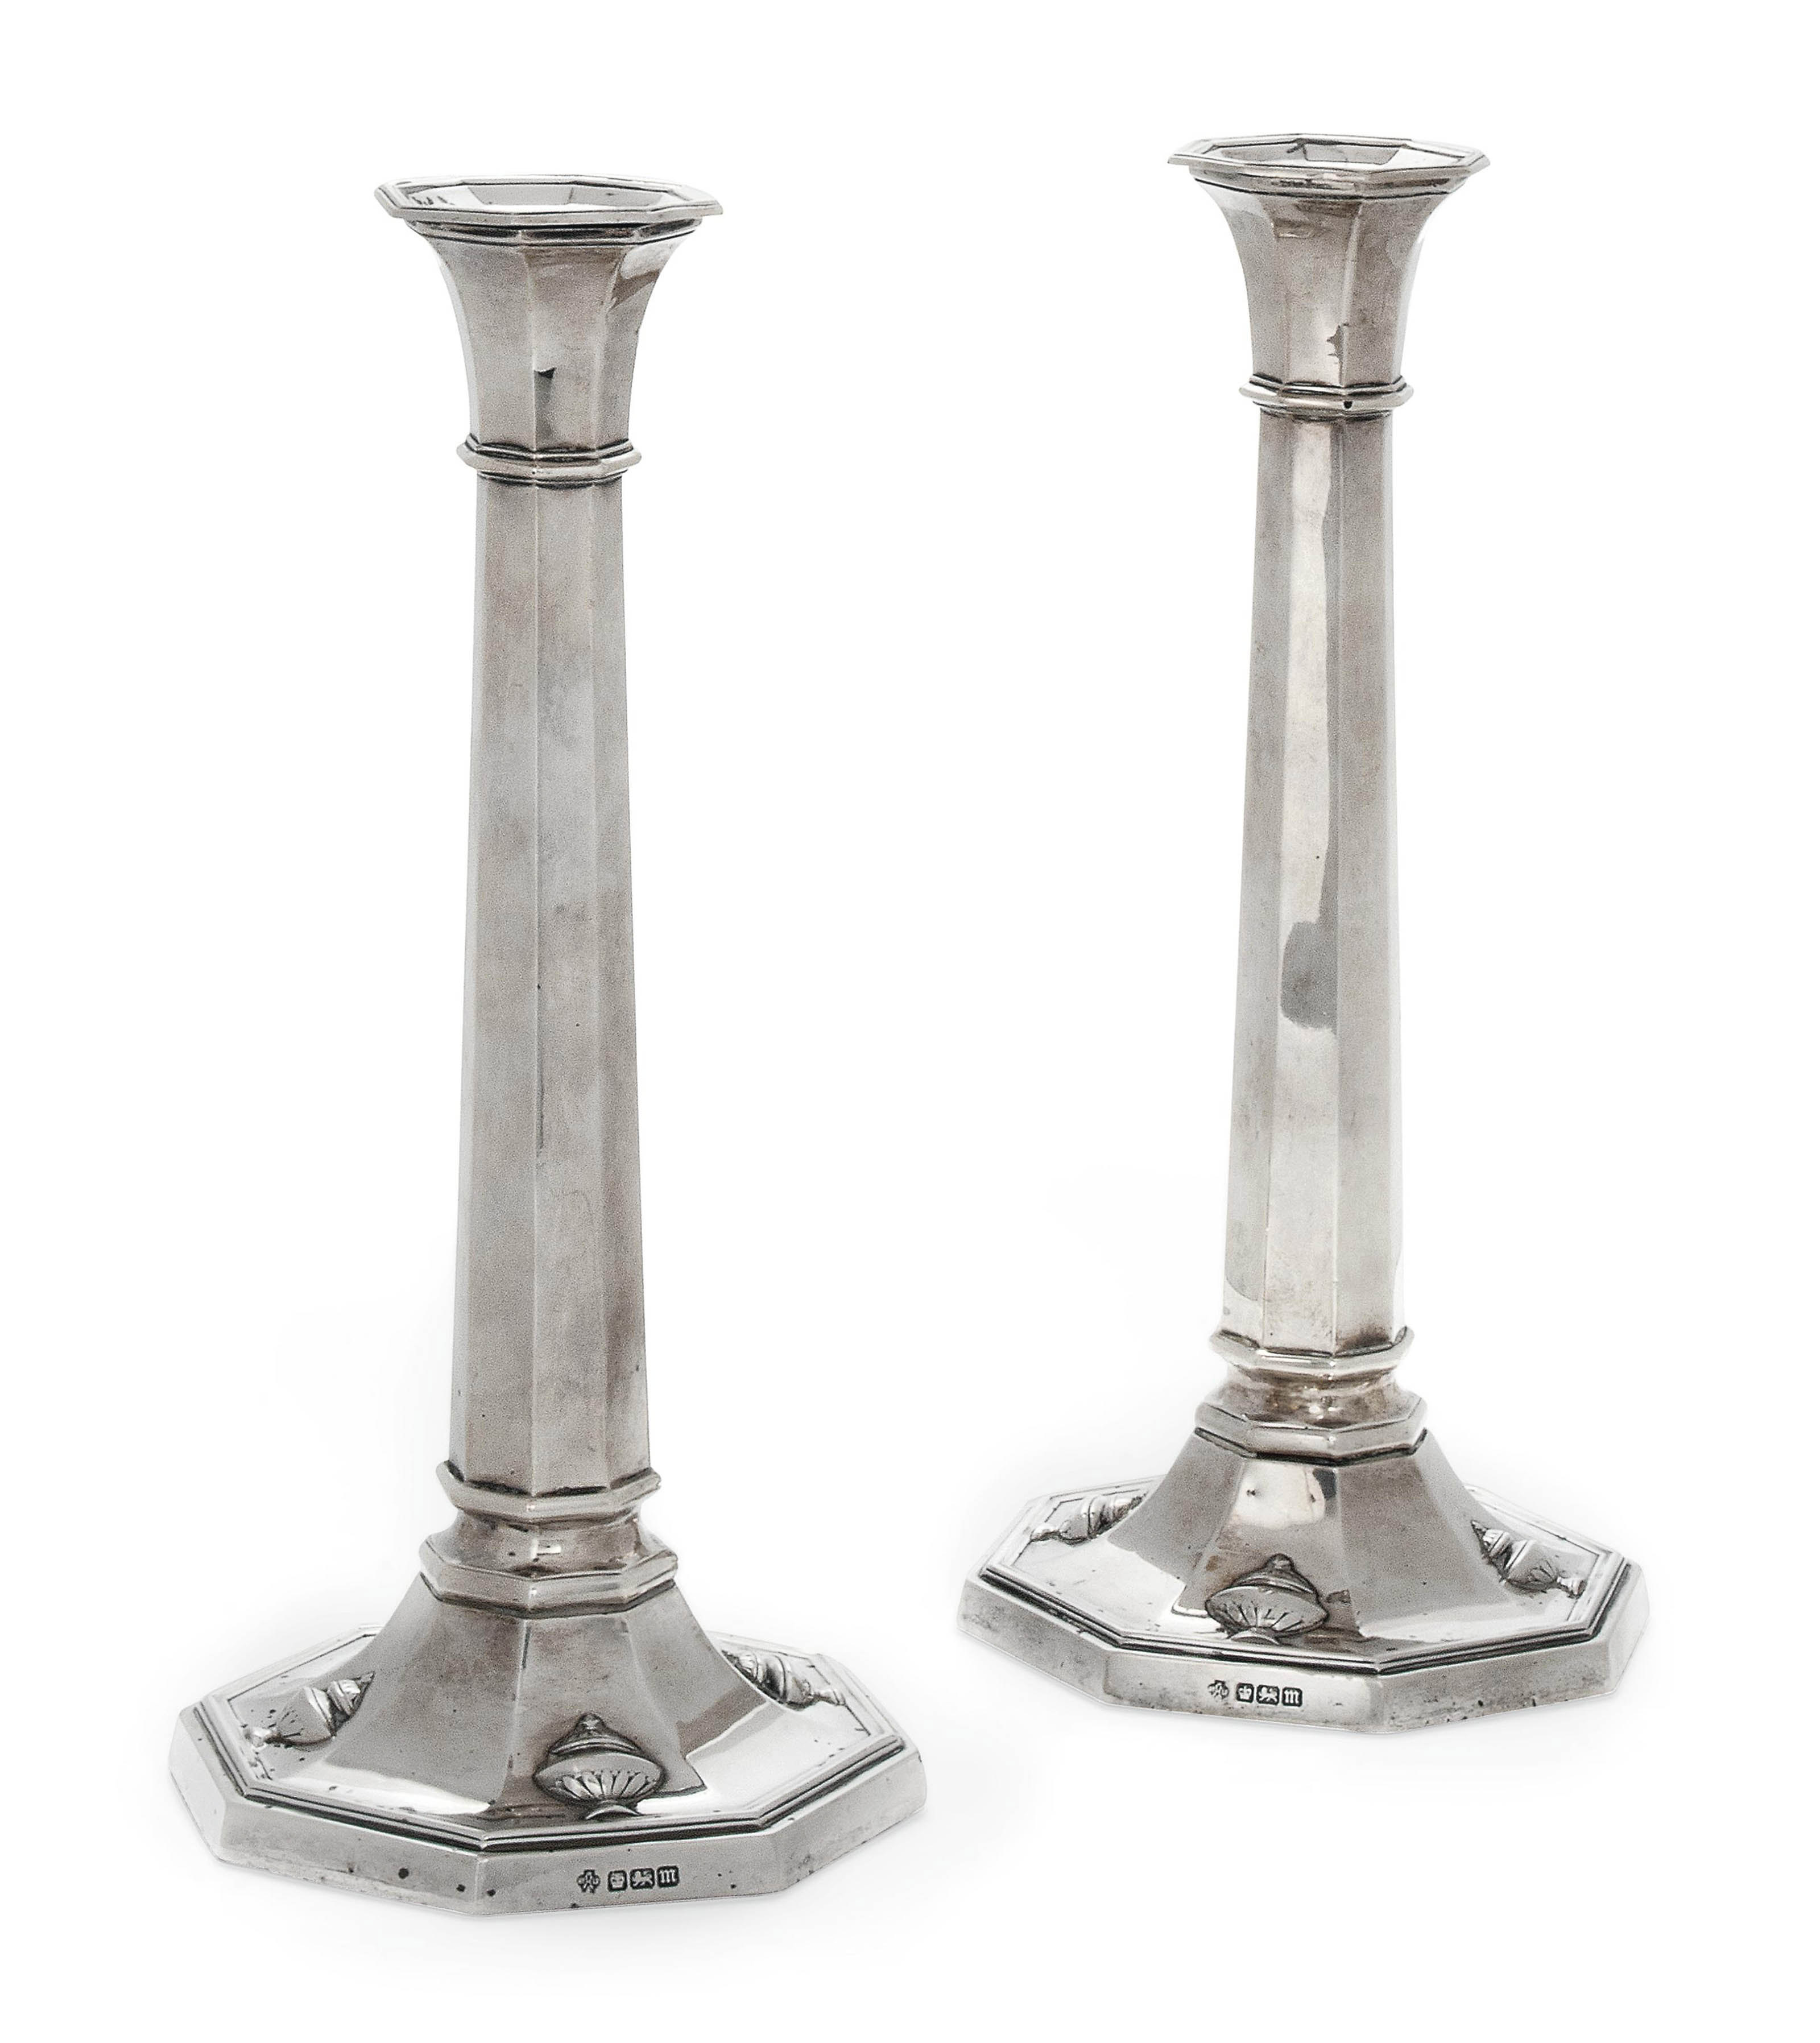 A PAIR OF EDWARDIAN OCTAGONAL SILVER CANDLESTICKS